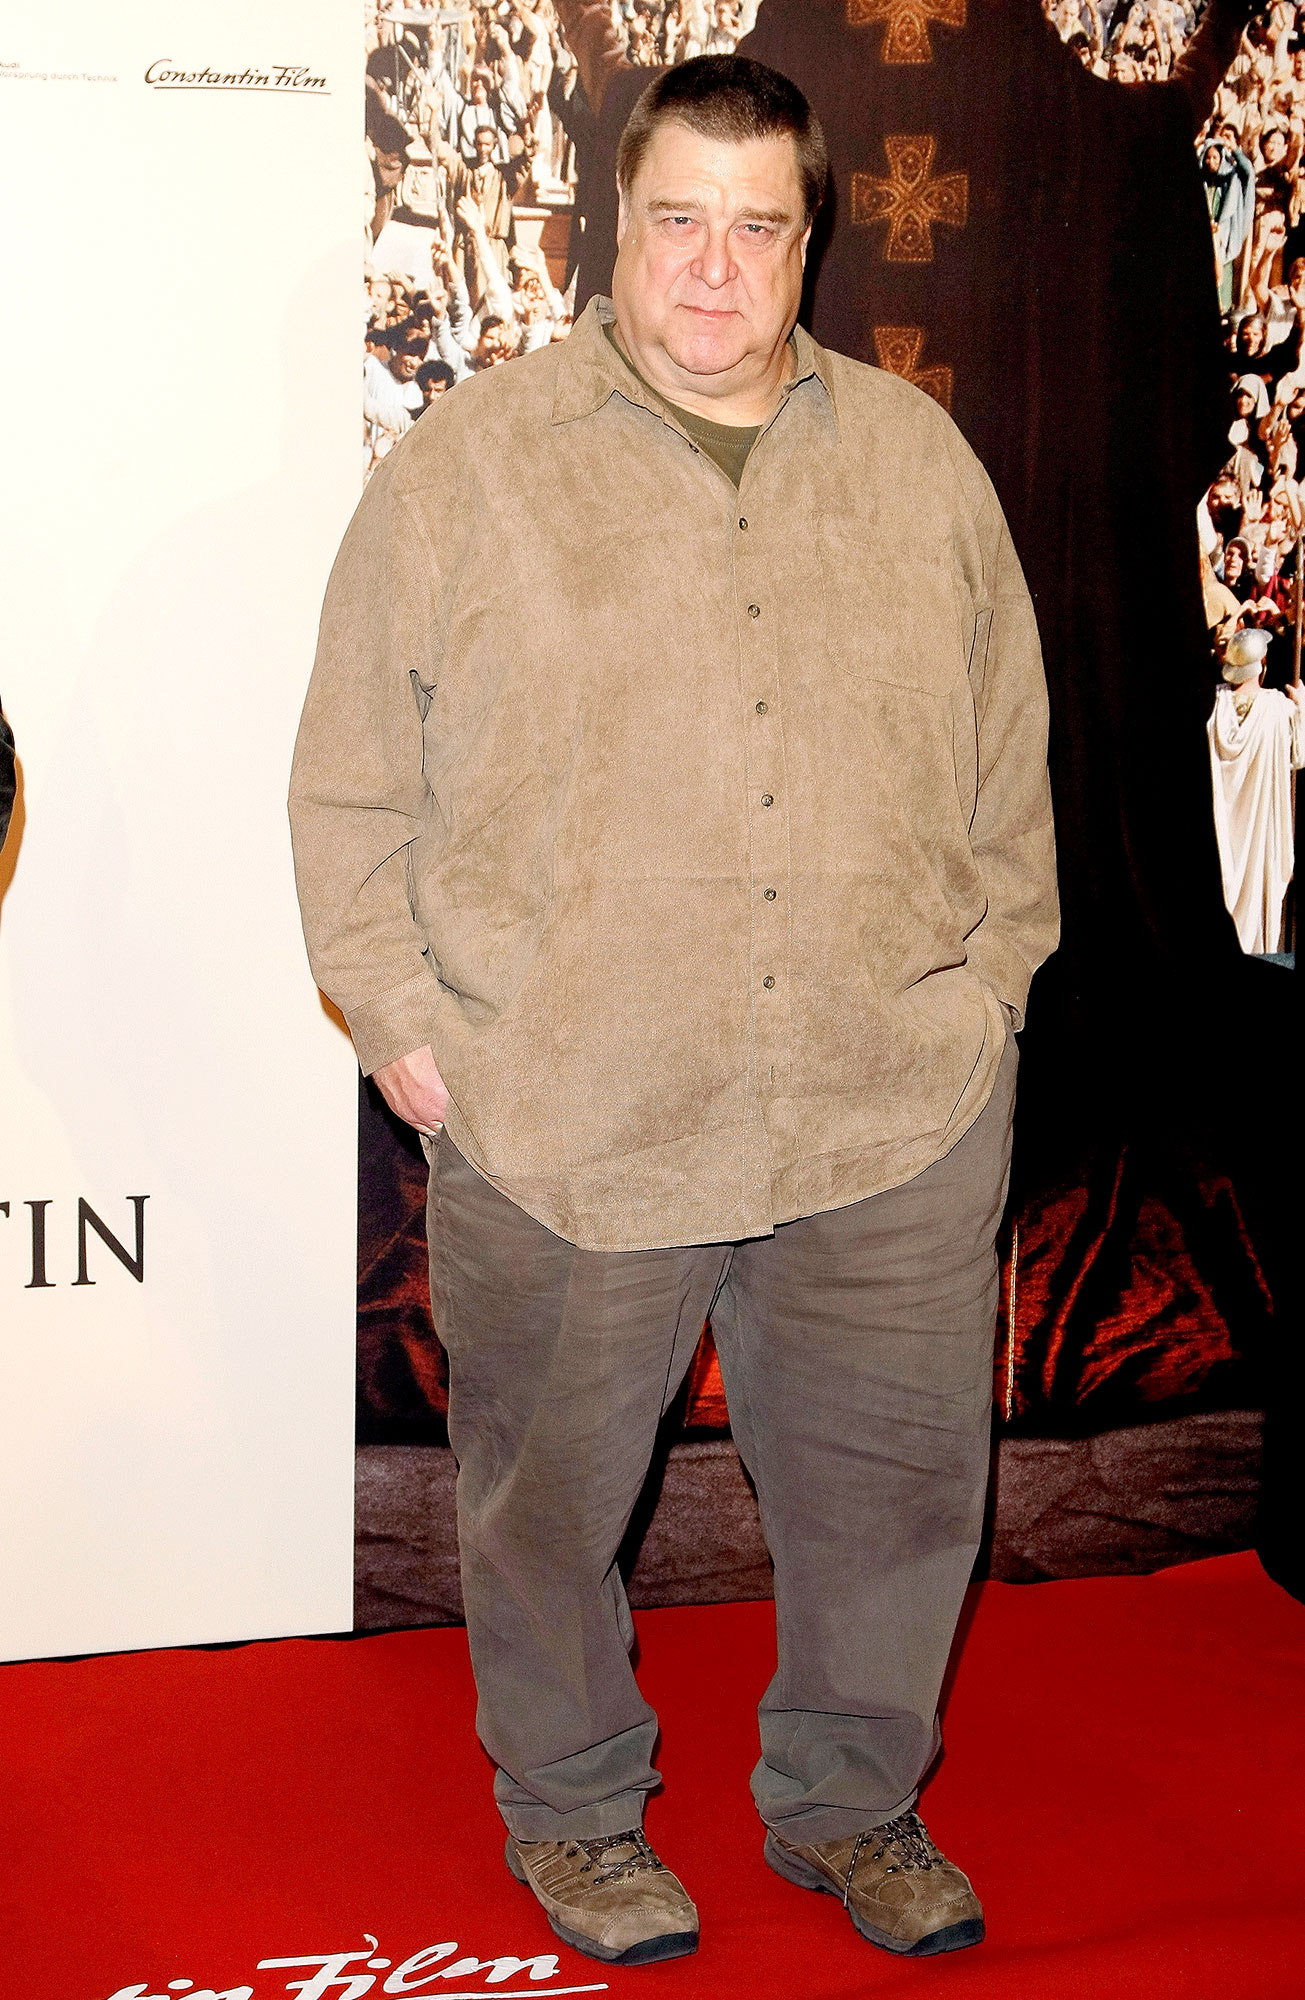 John Goodman attends the photocall of 'Pope Joan' at Hotel Ritz Carlton on October 19, 2009 in Berlin, Germany.